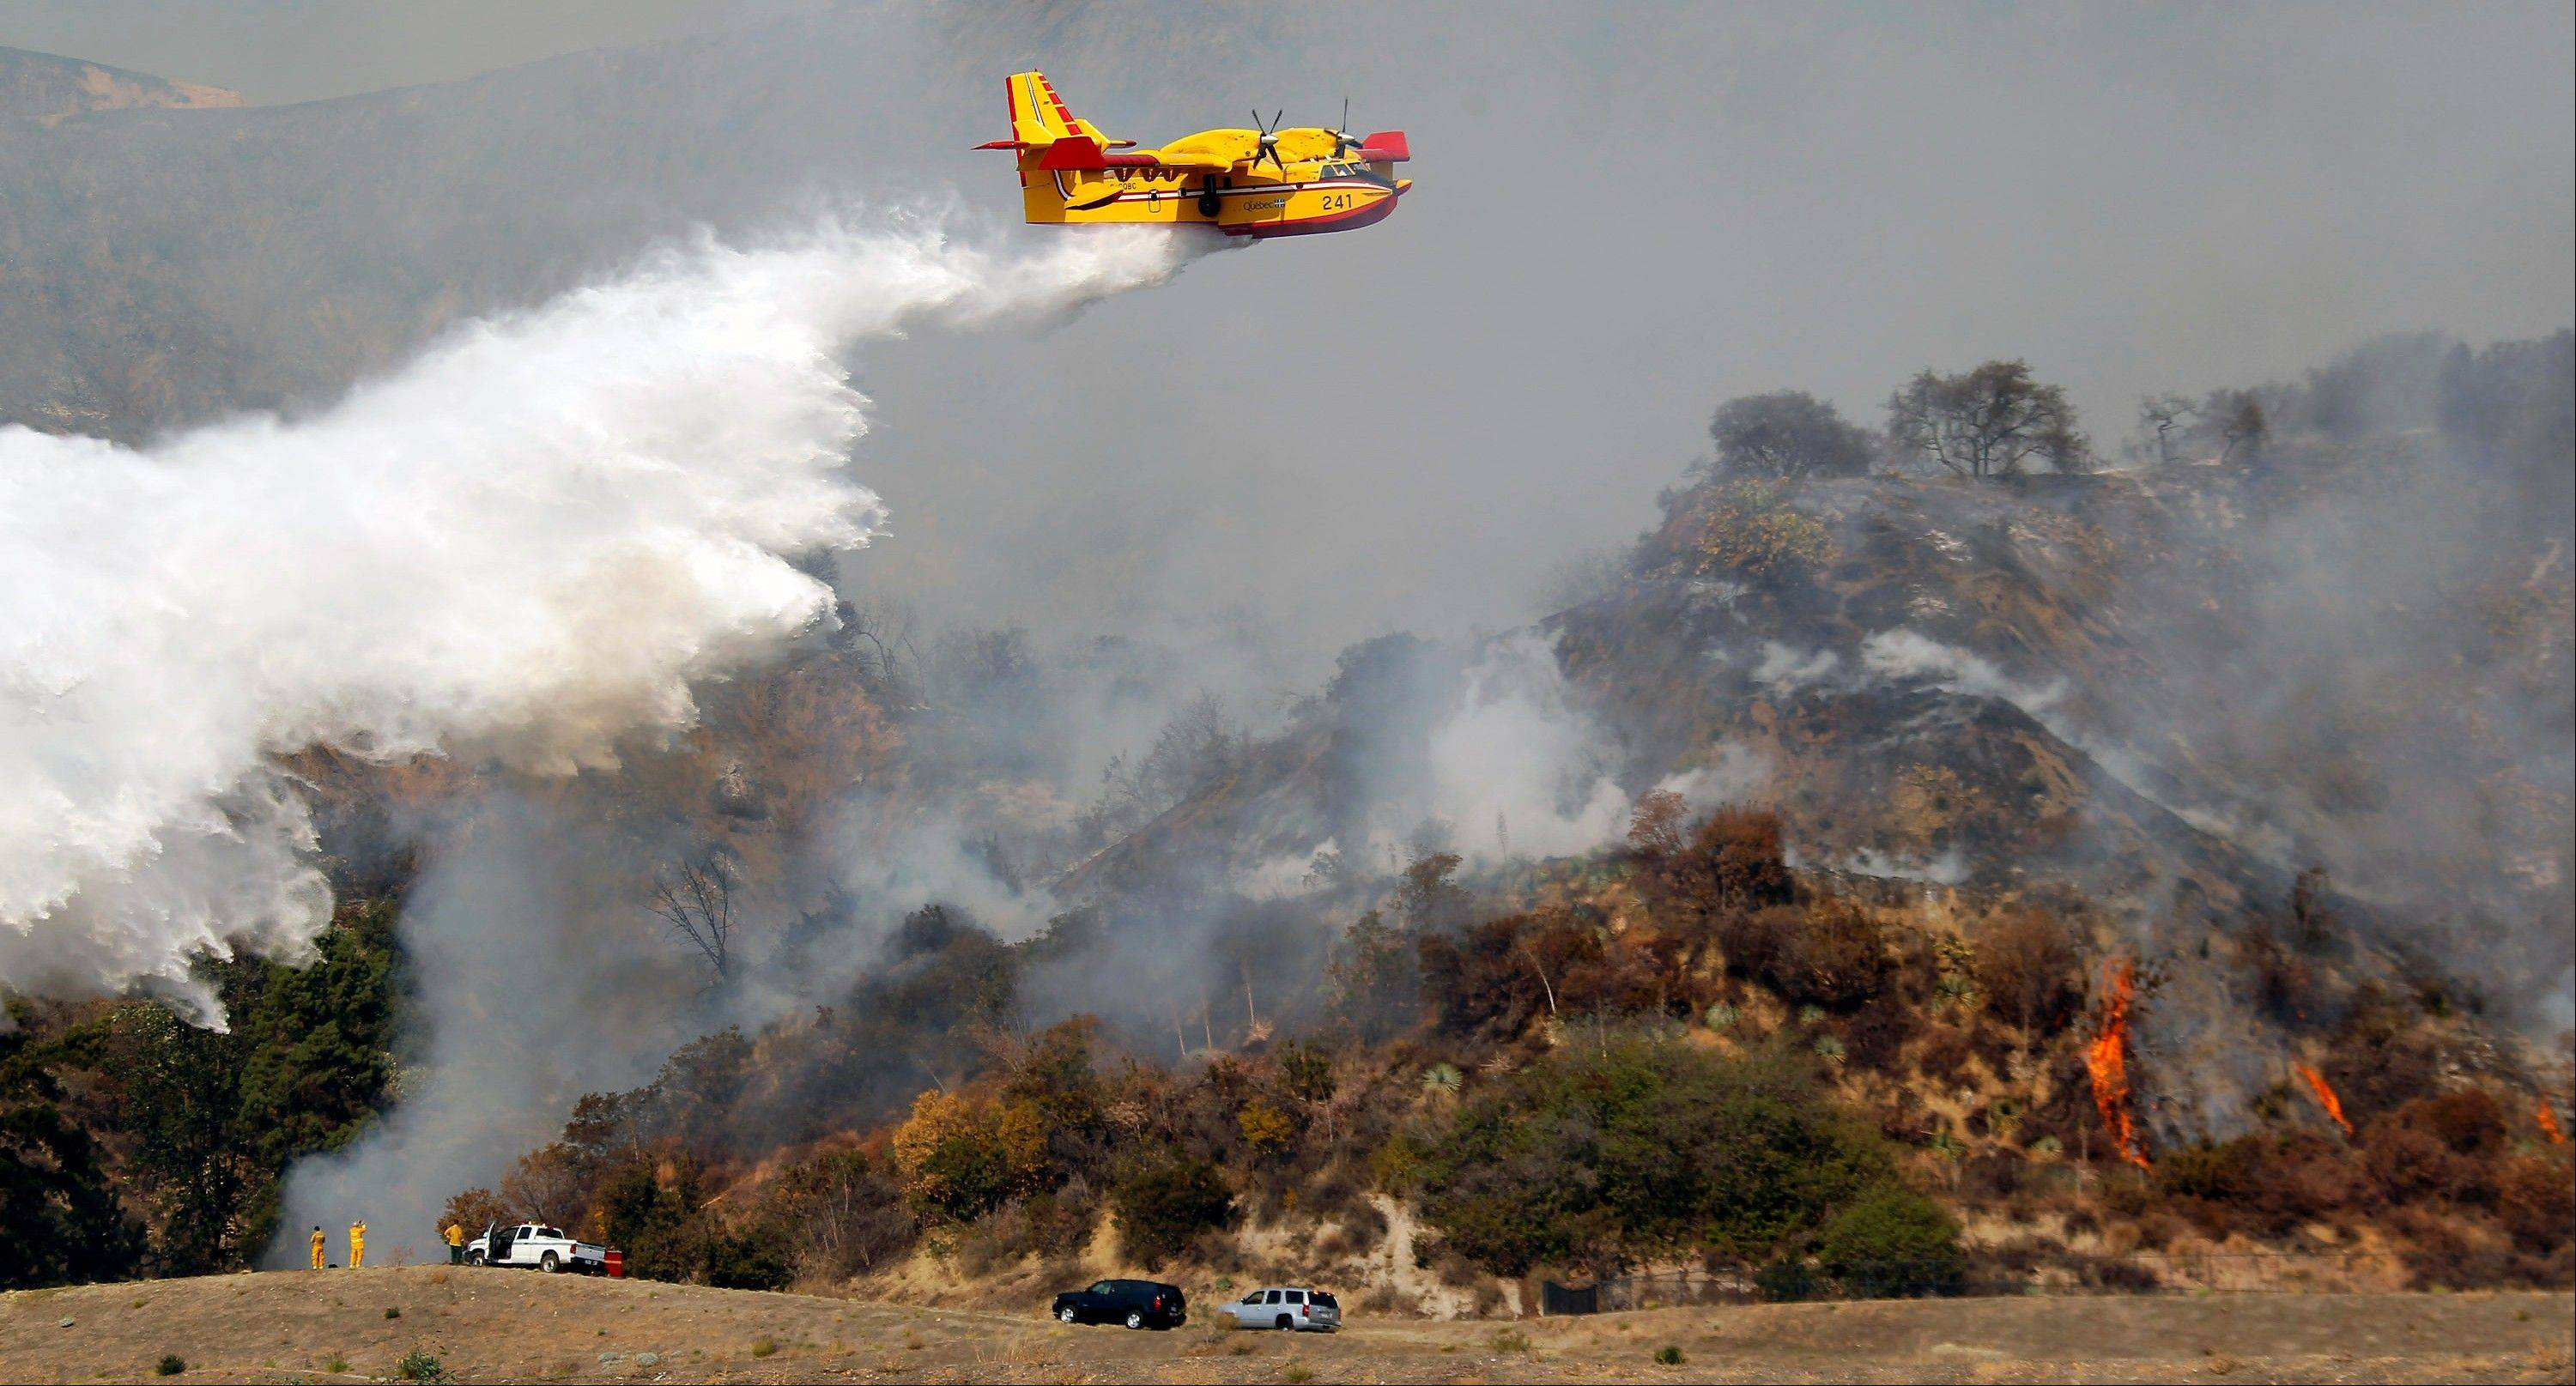 A firefighting plane makes a water drop on a wildfire that�s burning in the hills just north of the San Gabriel Valley community of Glendora, Calif., on Thursday, Jan 16, 2014. Southern California authorities have ordered the evacuation of homes at the edge of a fast-moving wildfire burning in the dangerously dry foothills of the San Gabriel Mountains.